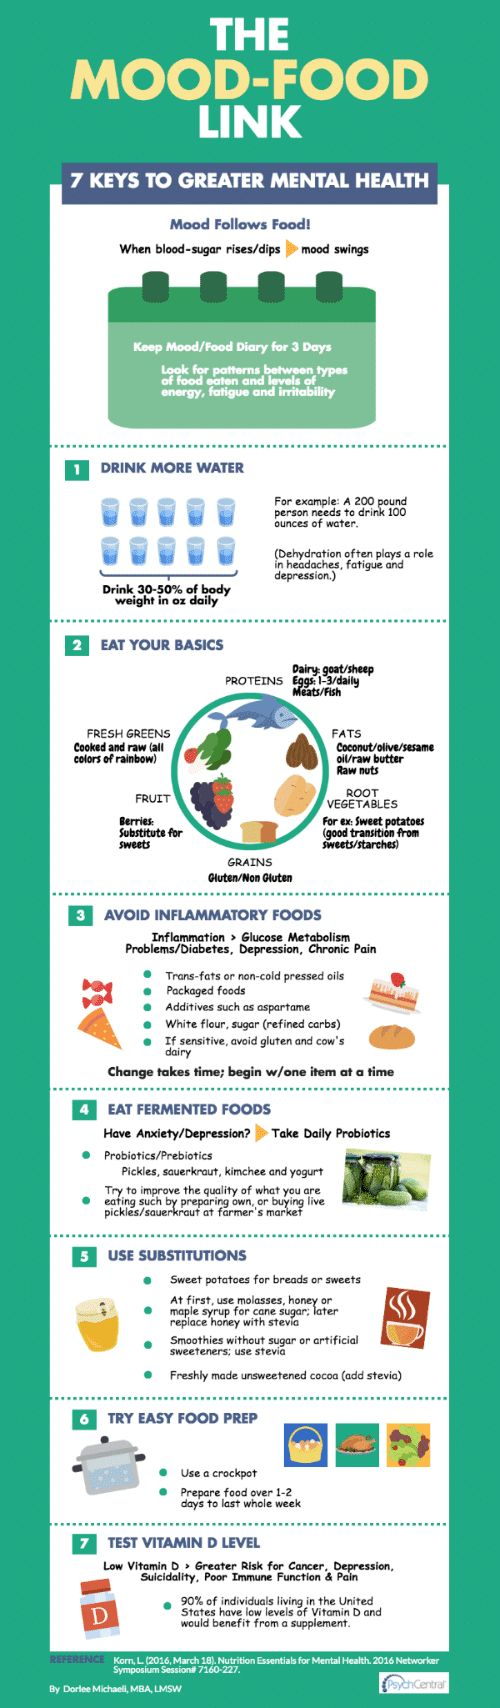 Mood Food Link - 7 Tips for Greater Mental Health